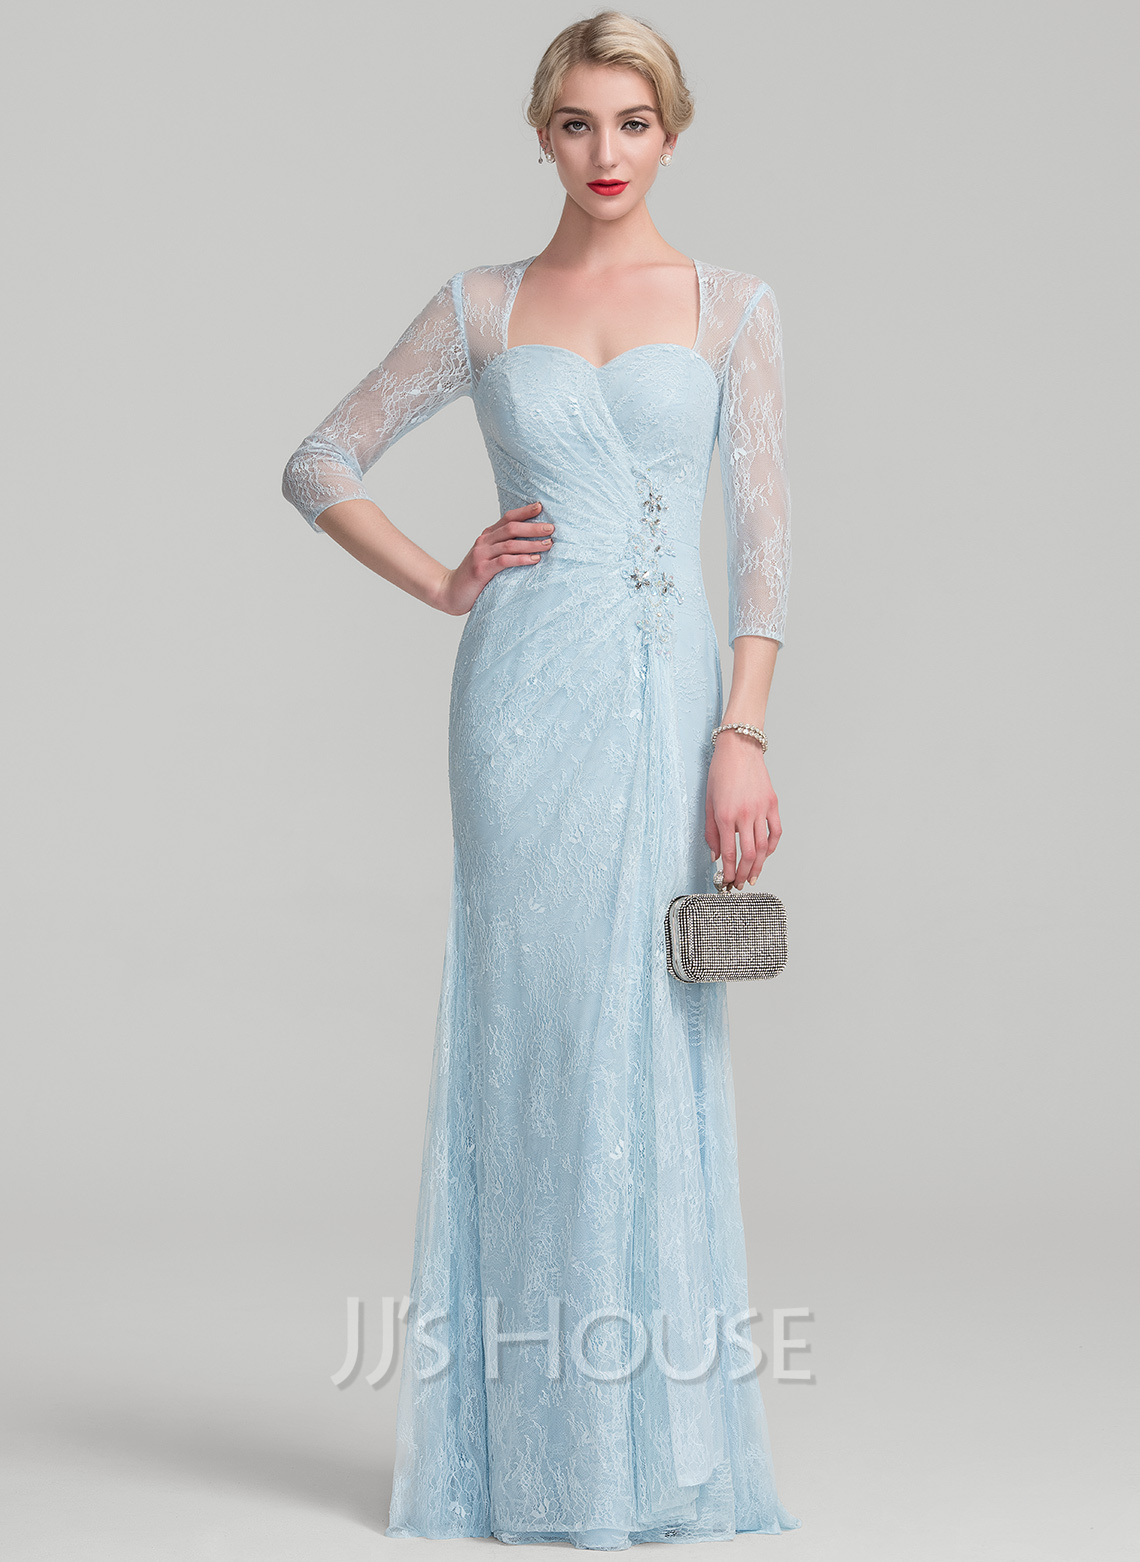 Sheath/Column Sweetheart Floor-Length Lace Mother of the Bride Dress With Beading Sequins